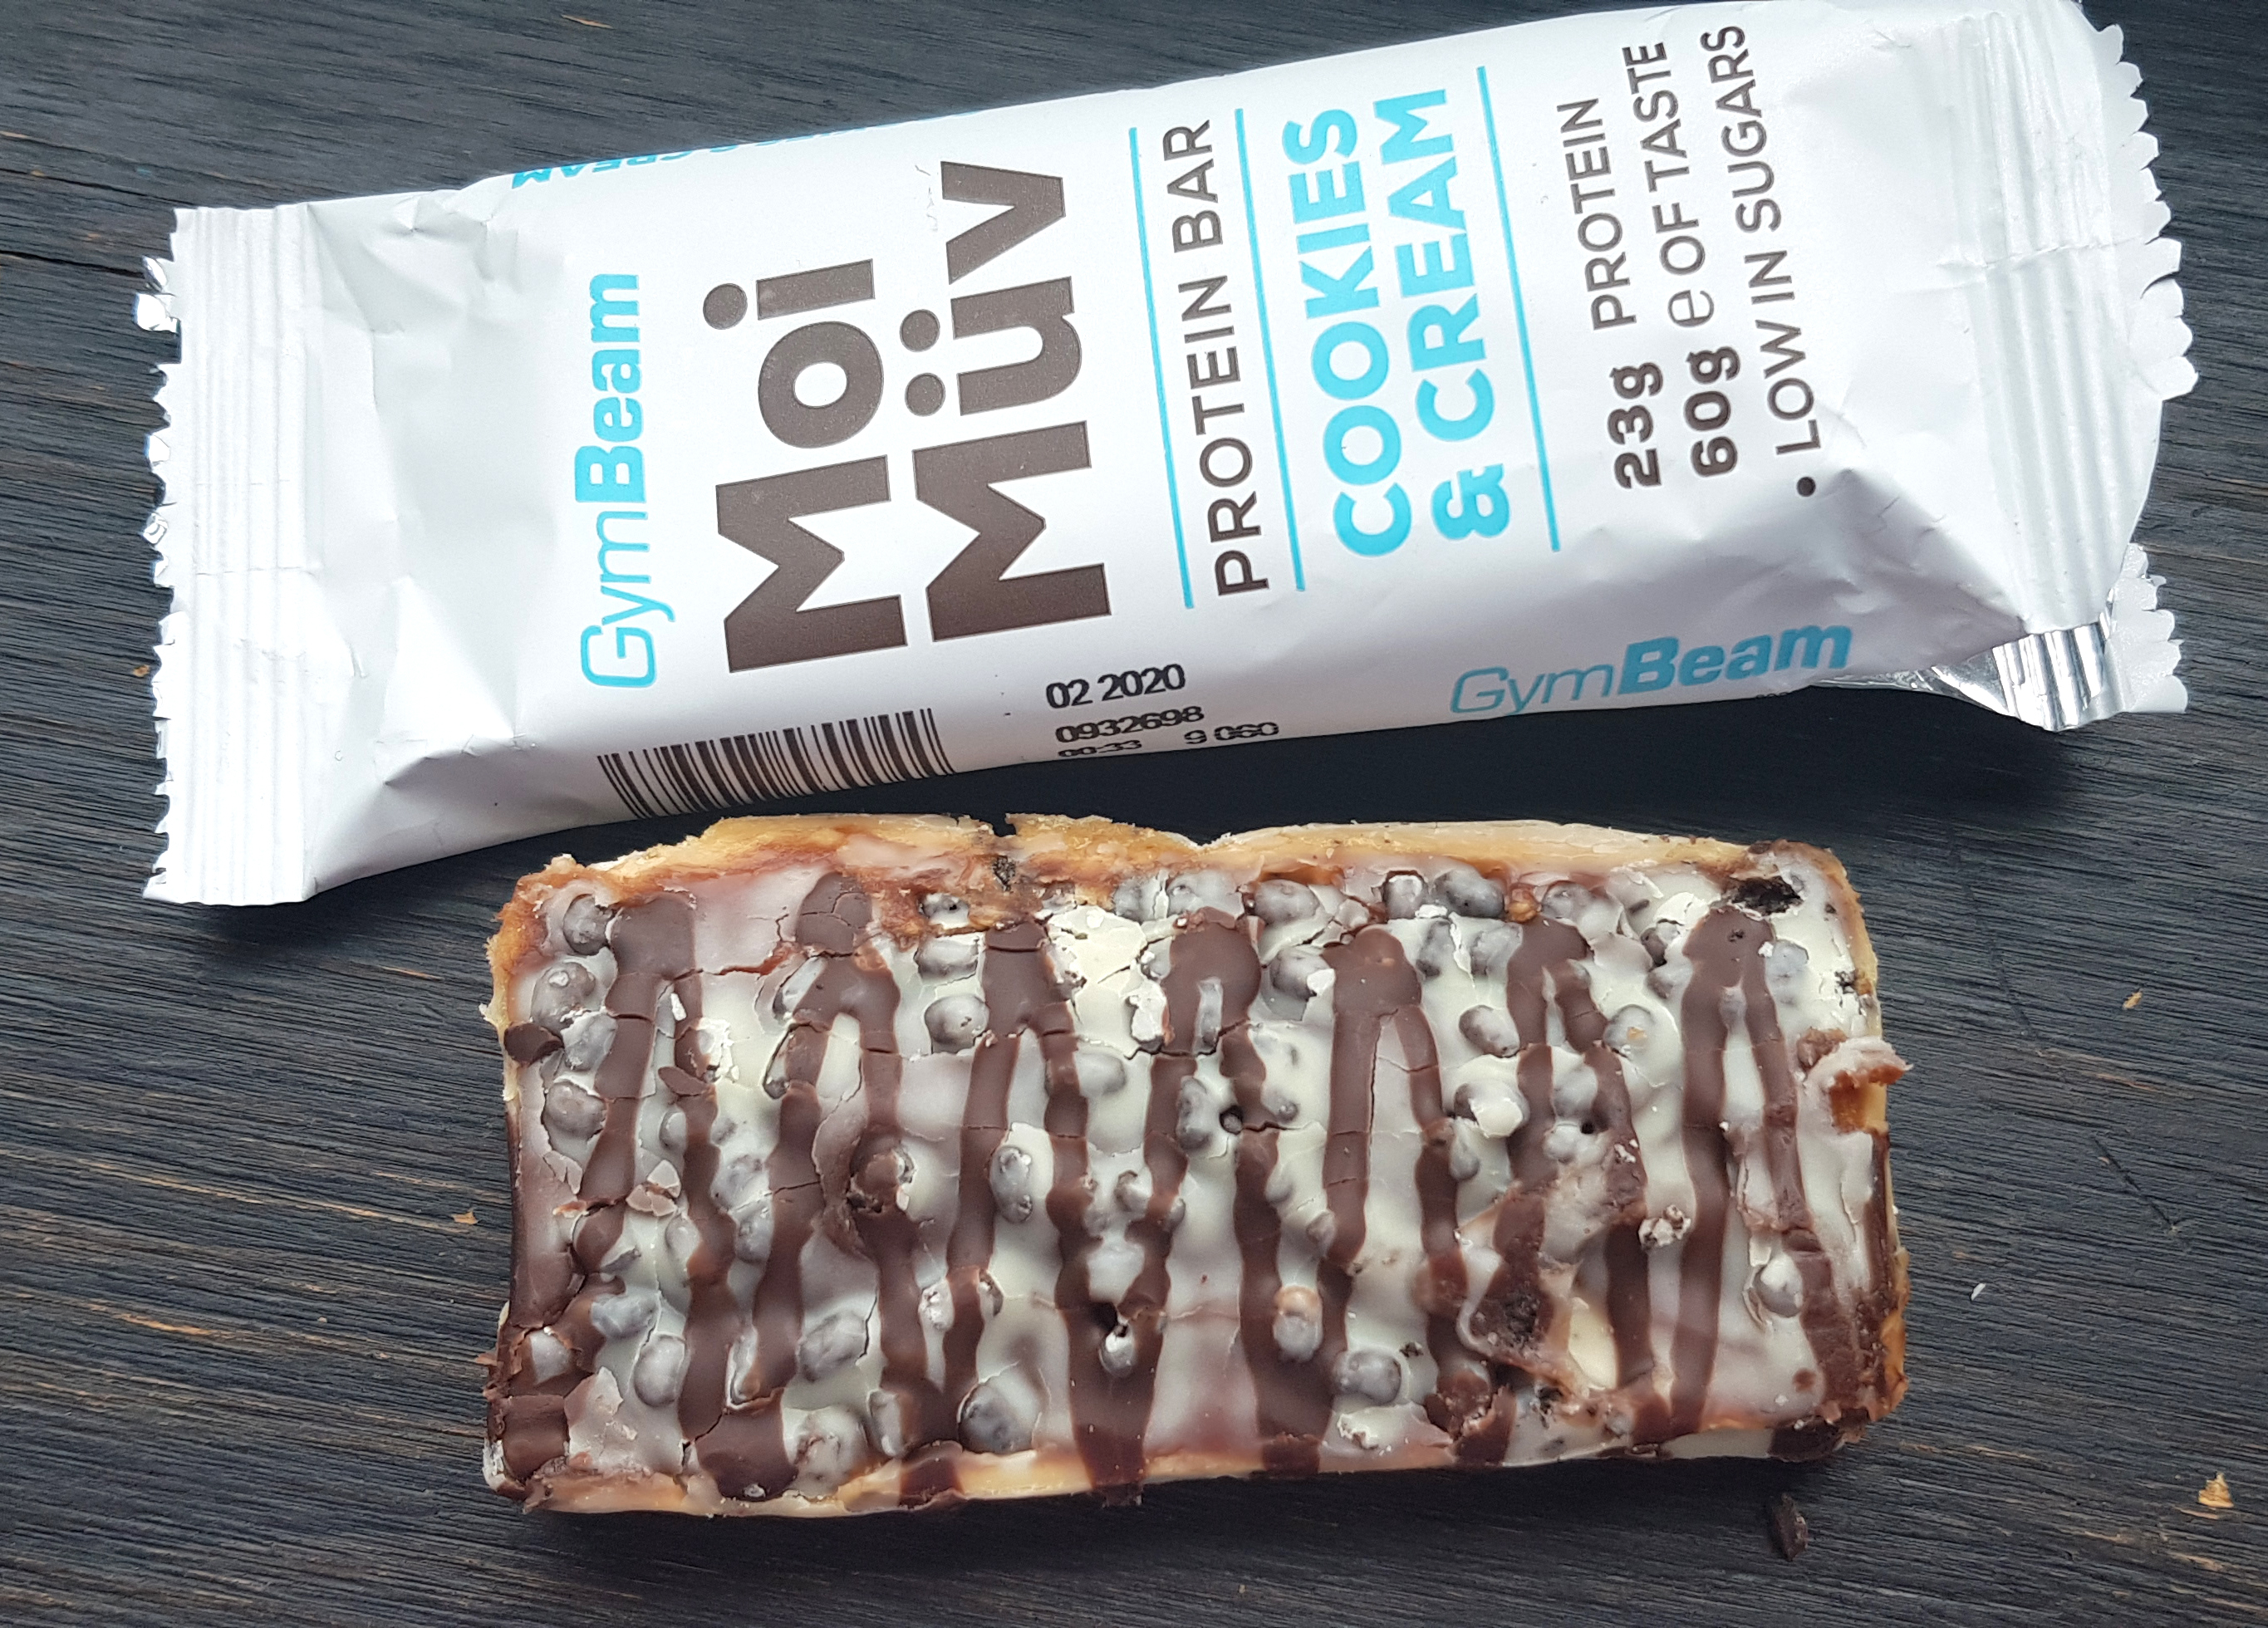 Moi Müv Cookies & Cream review